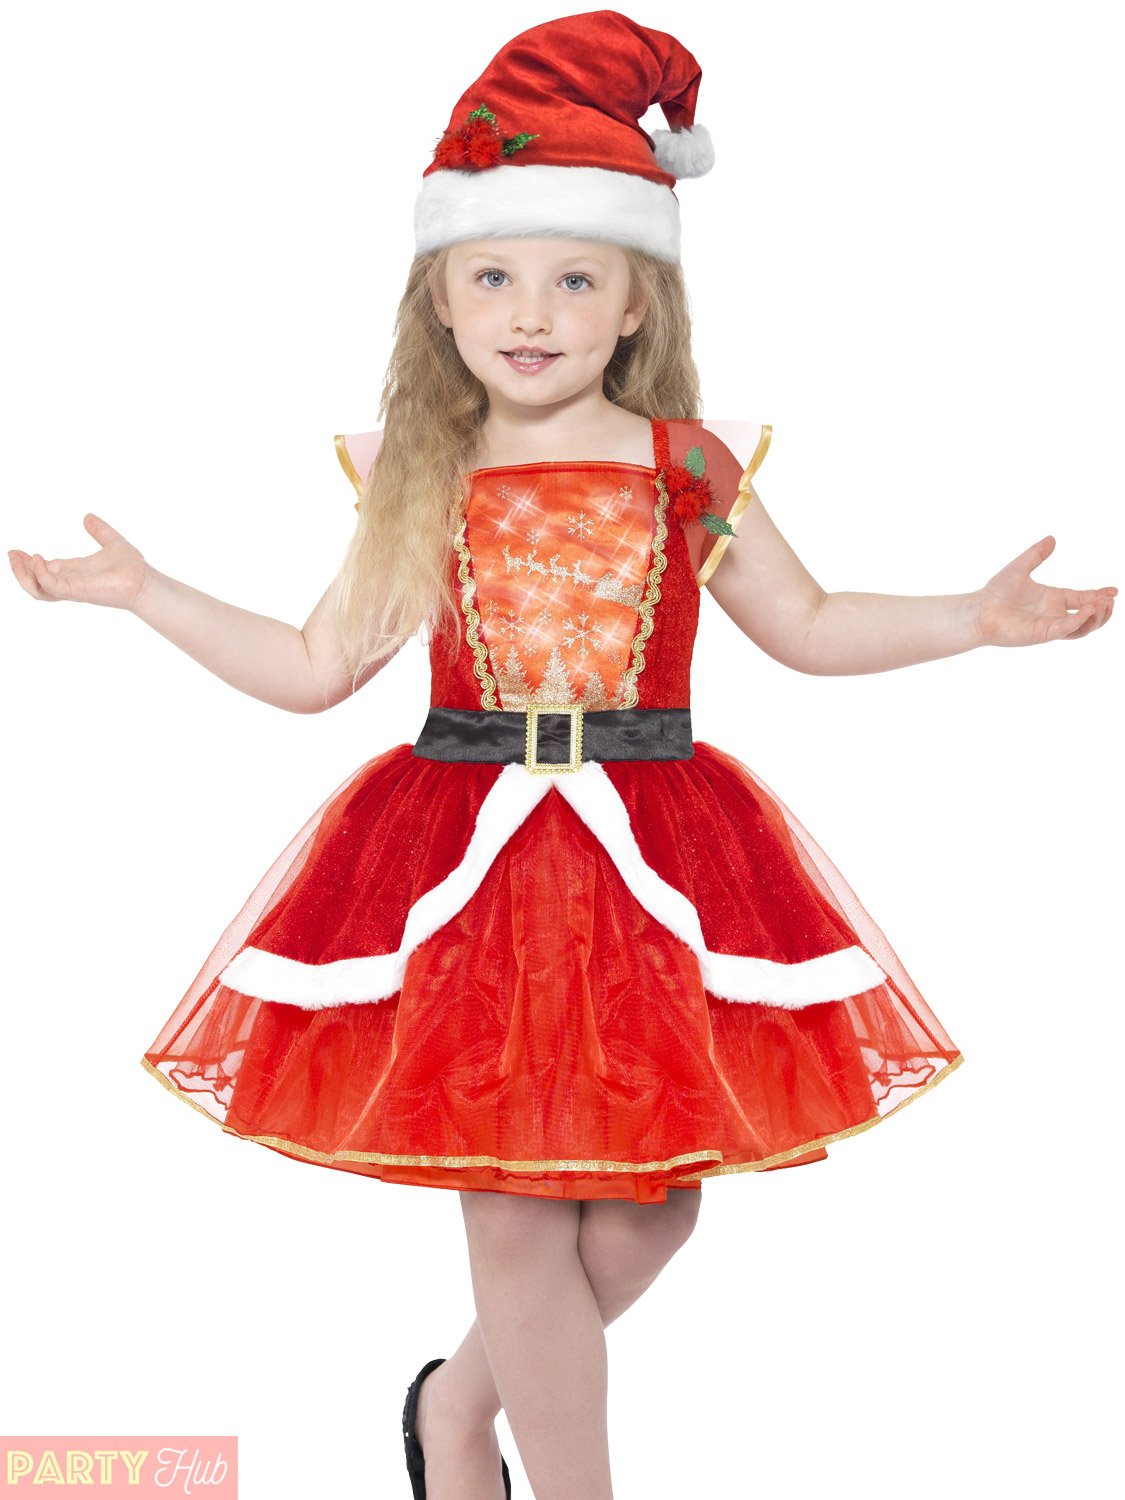 At Sophia's Style, we've got gorgeous Christmas dresses, adorable Christmas outfits, crisp boy's holiday suits, and great Christmas accessories and shoes. Find everything you need to make the holidays complete for your kids by shopping at Sophia's Style right from home.